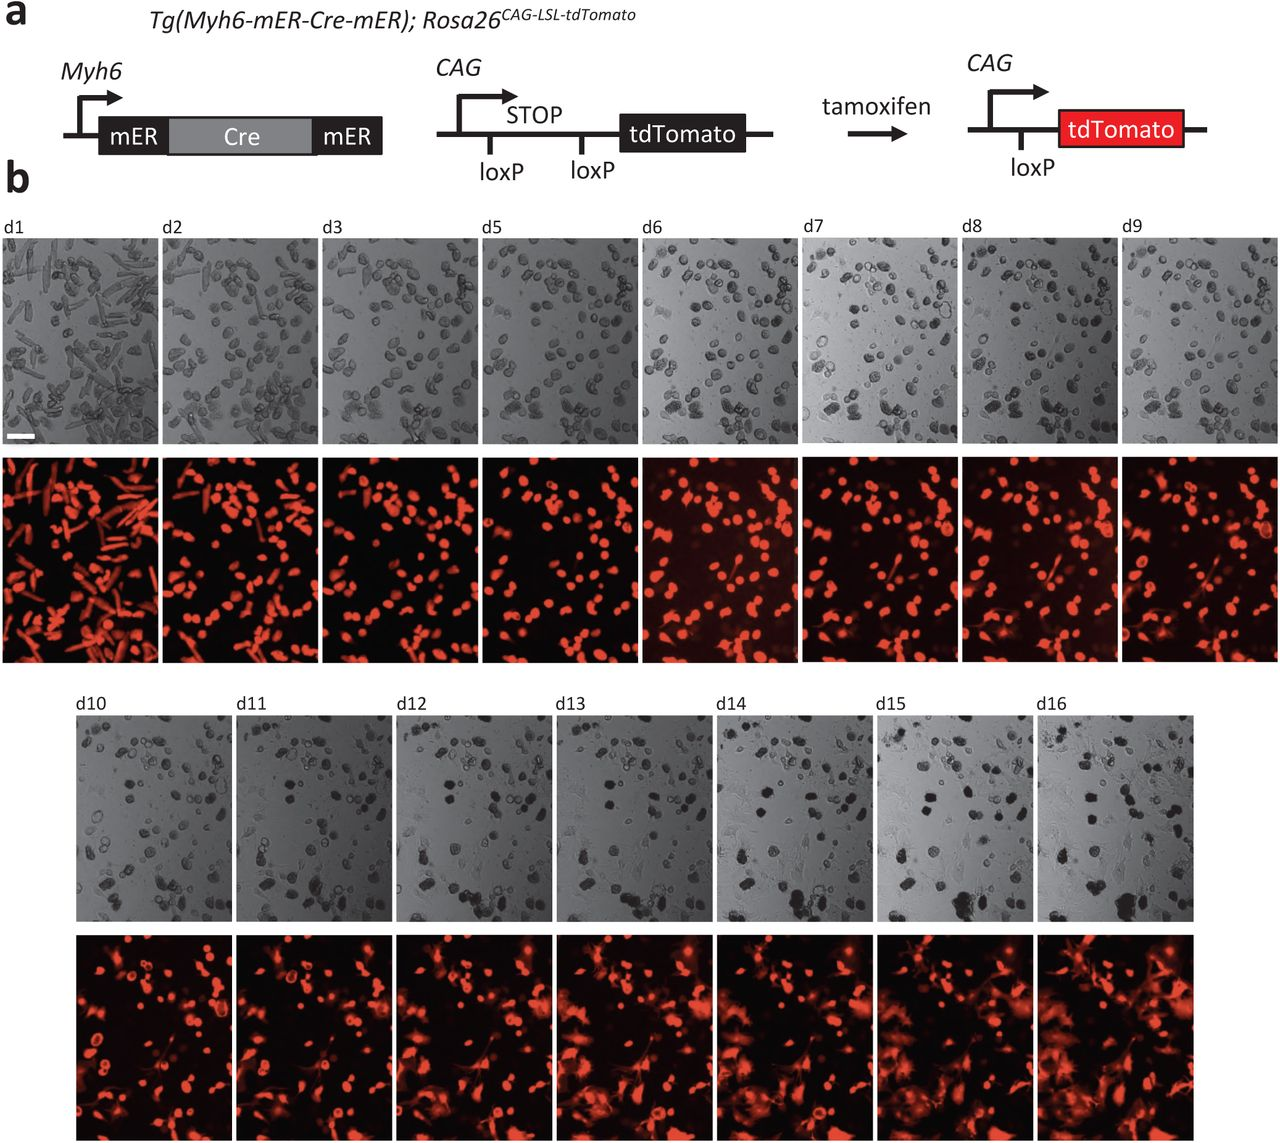 Defined factors to reactivate cell cycle activity in adult